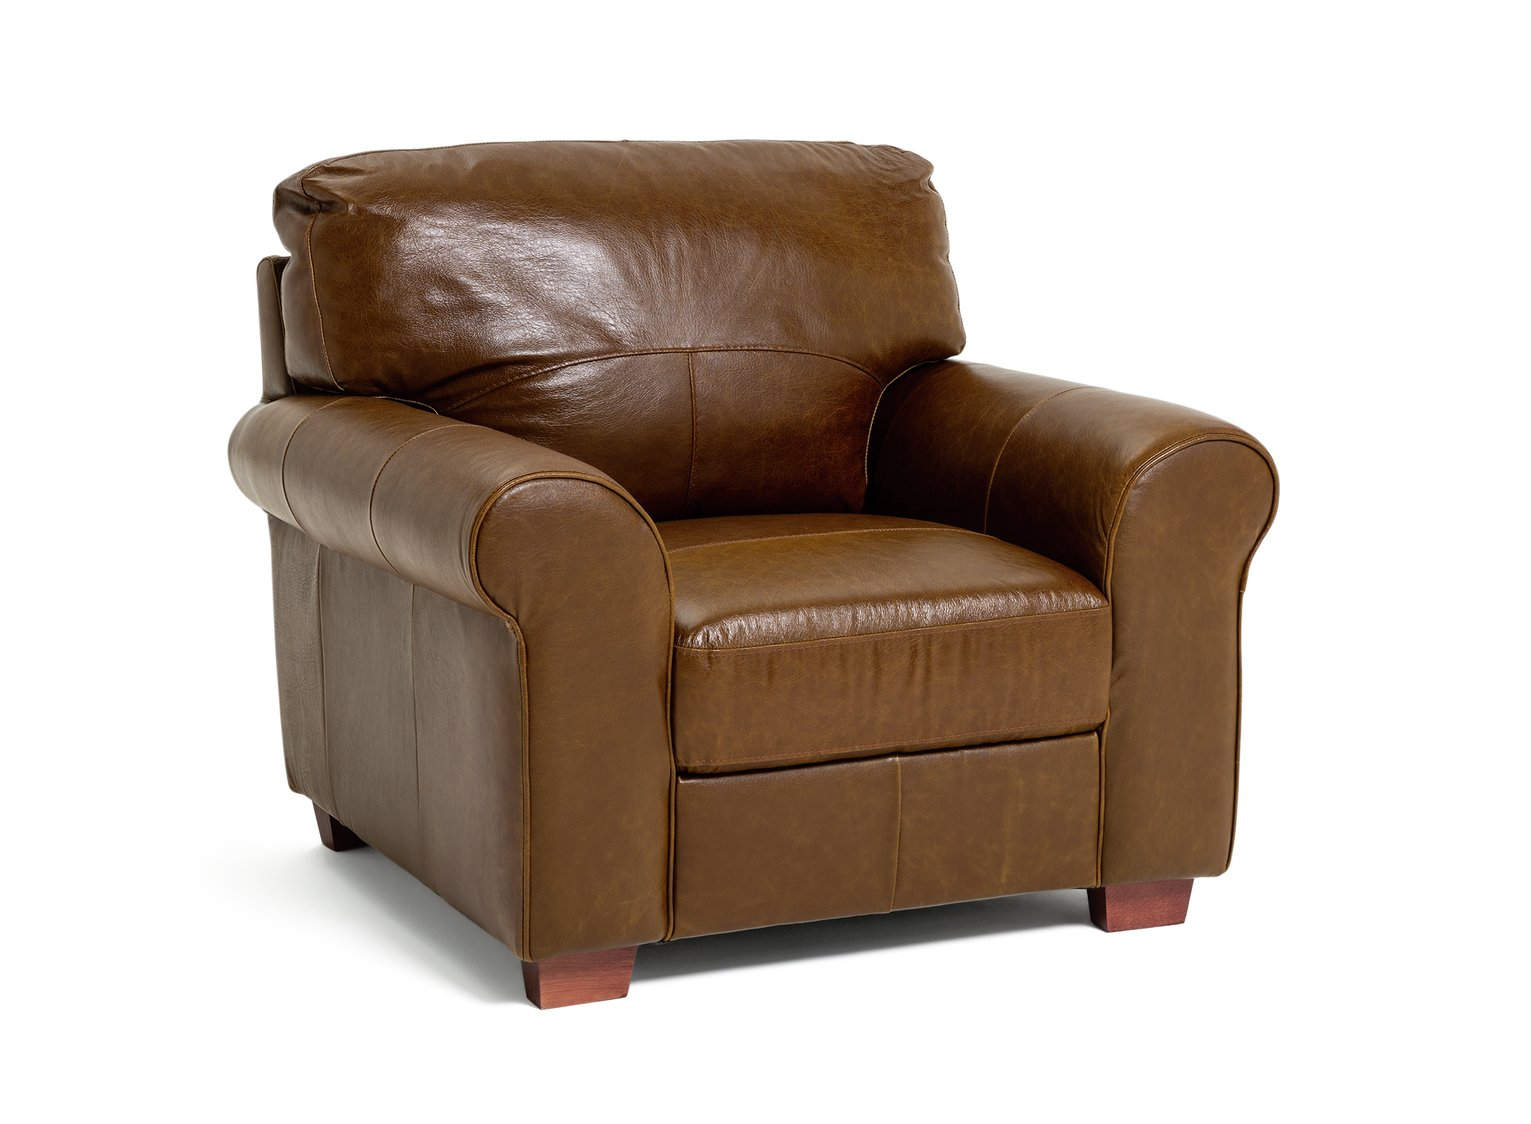 Argos Home Salisbury Leather Armchair - Tan